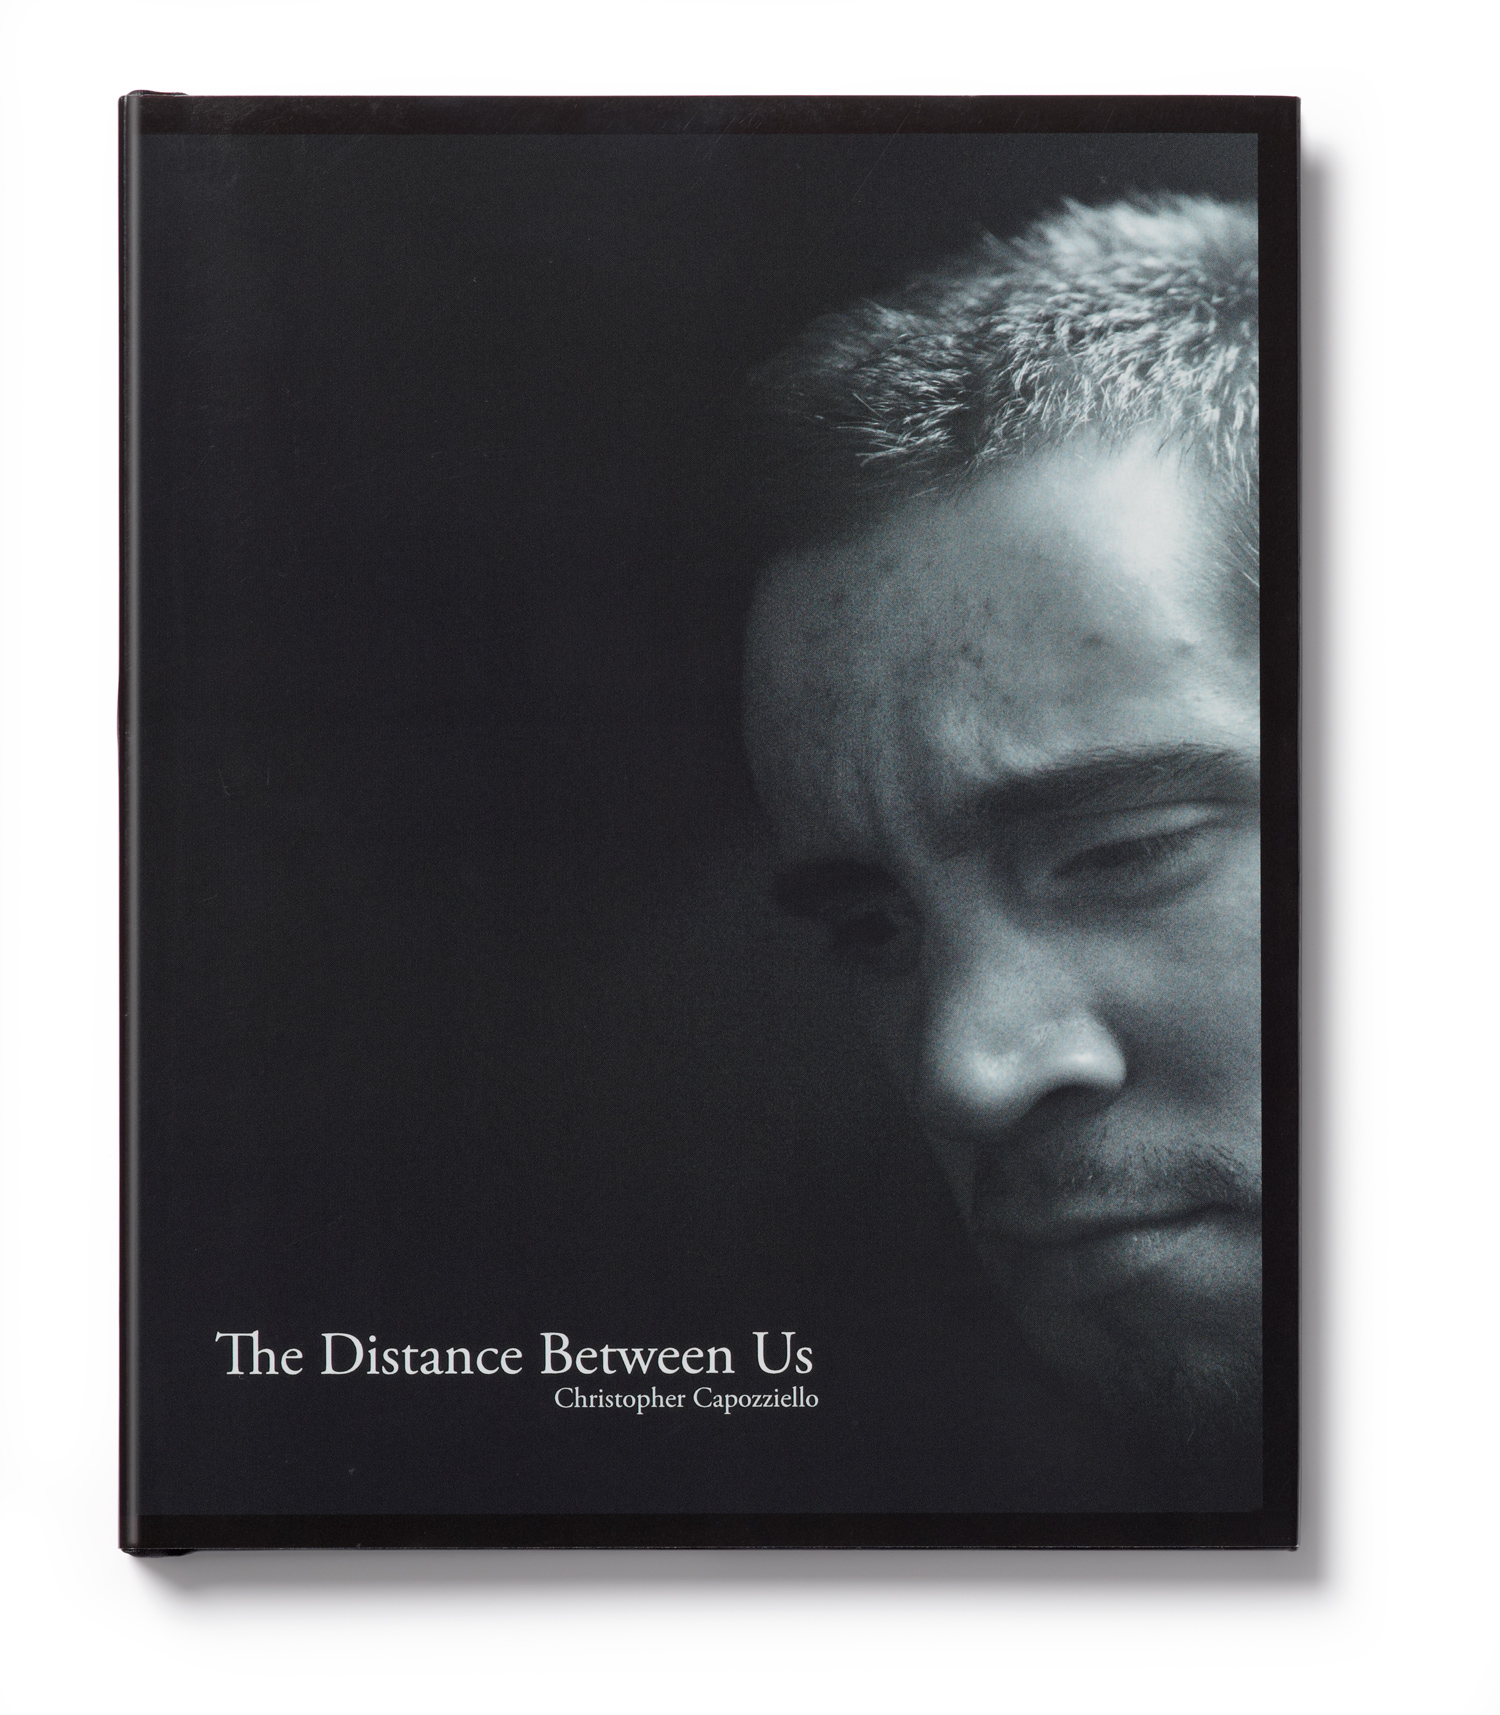 The cover of The Distance Between Us by Christopher Capozziello, was the first runner-up in the documentary category.